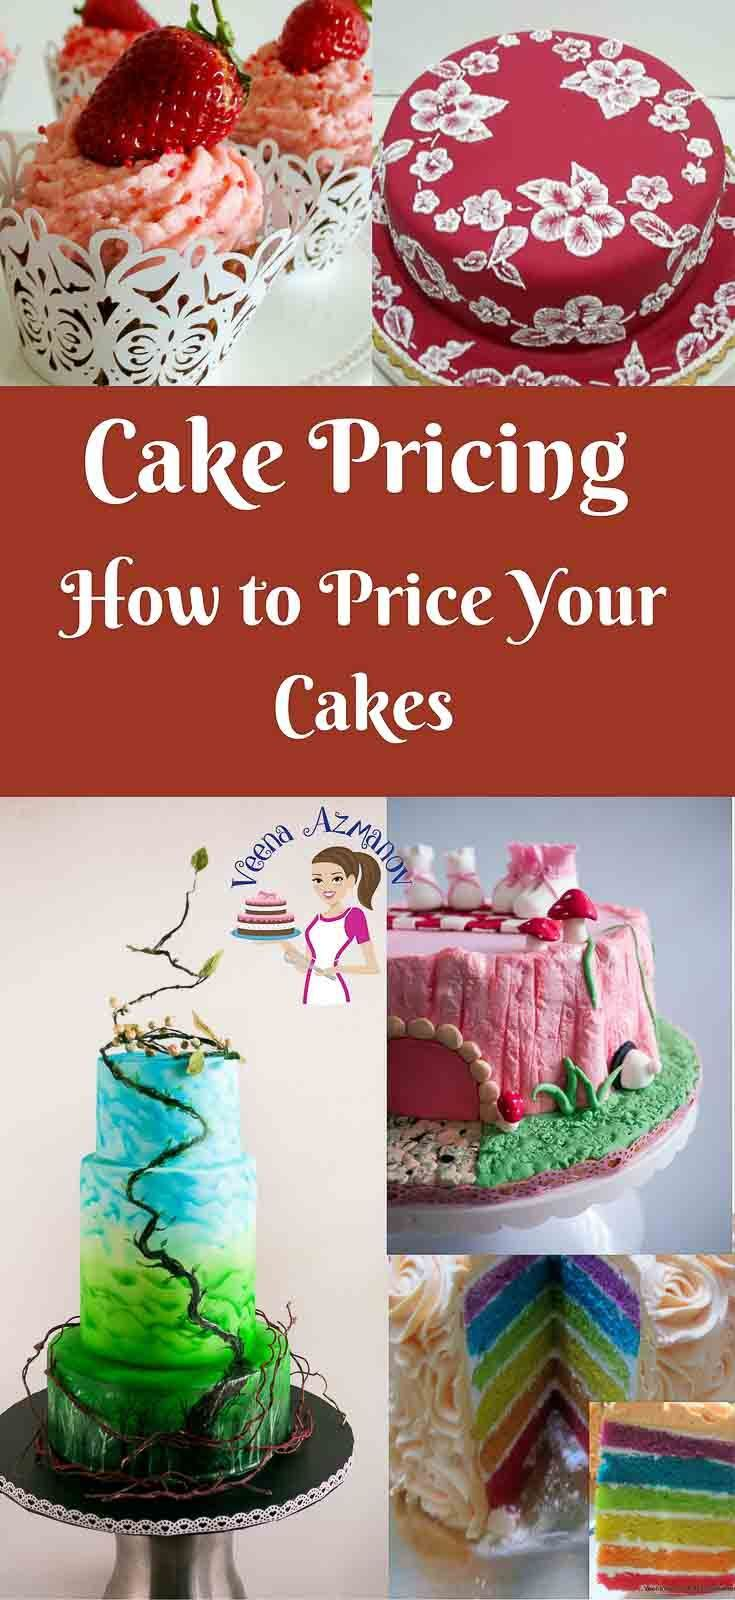 Cake Decorating Questions : Best 25+ Cake pricing ideas on Pinterest Cake servings ...